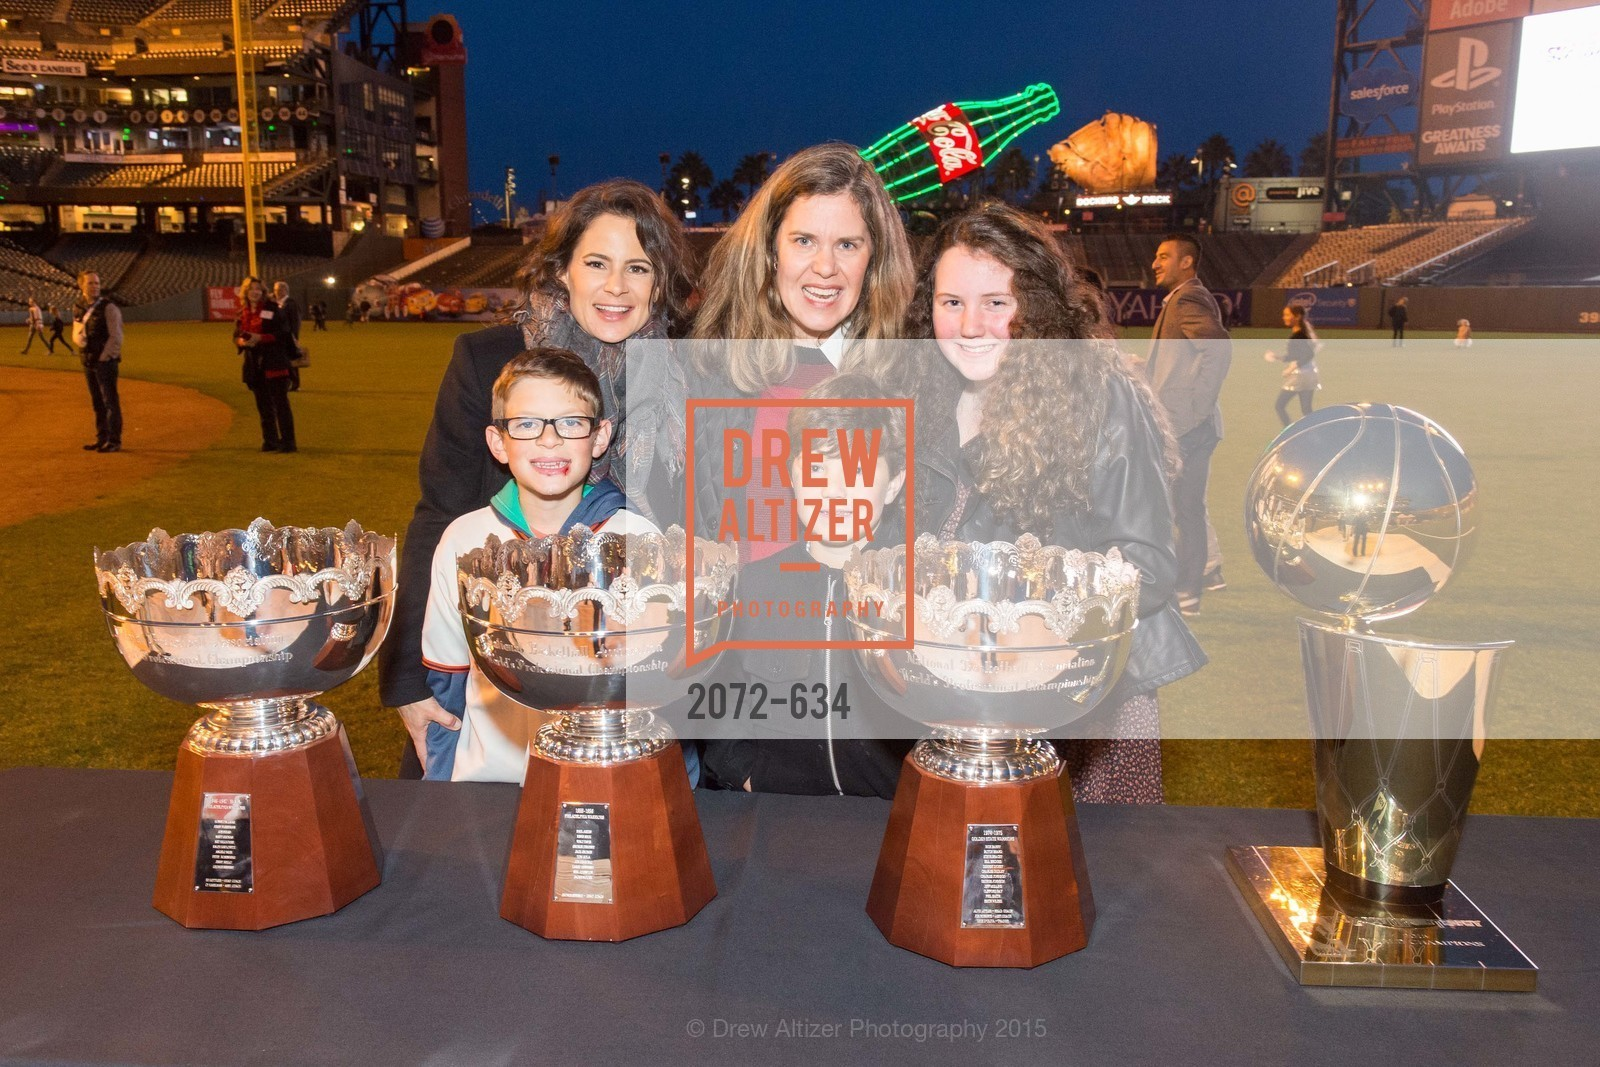 Sawyer Reicher, Wendy Reicher, Christine Considine, Carter Considine, Carolyn Considine, Holiday Heroes 2015, AT&T Park, December 7th, 2015,Drew Altizer, Drew Altizer Photography, full-service agency, private events, San Francisco photographer, photographer california